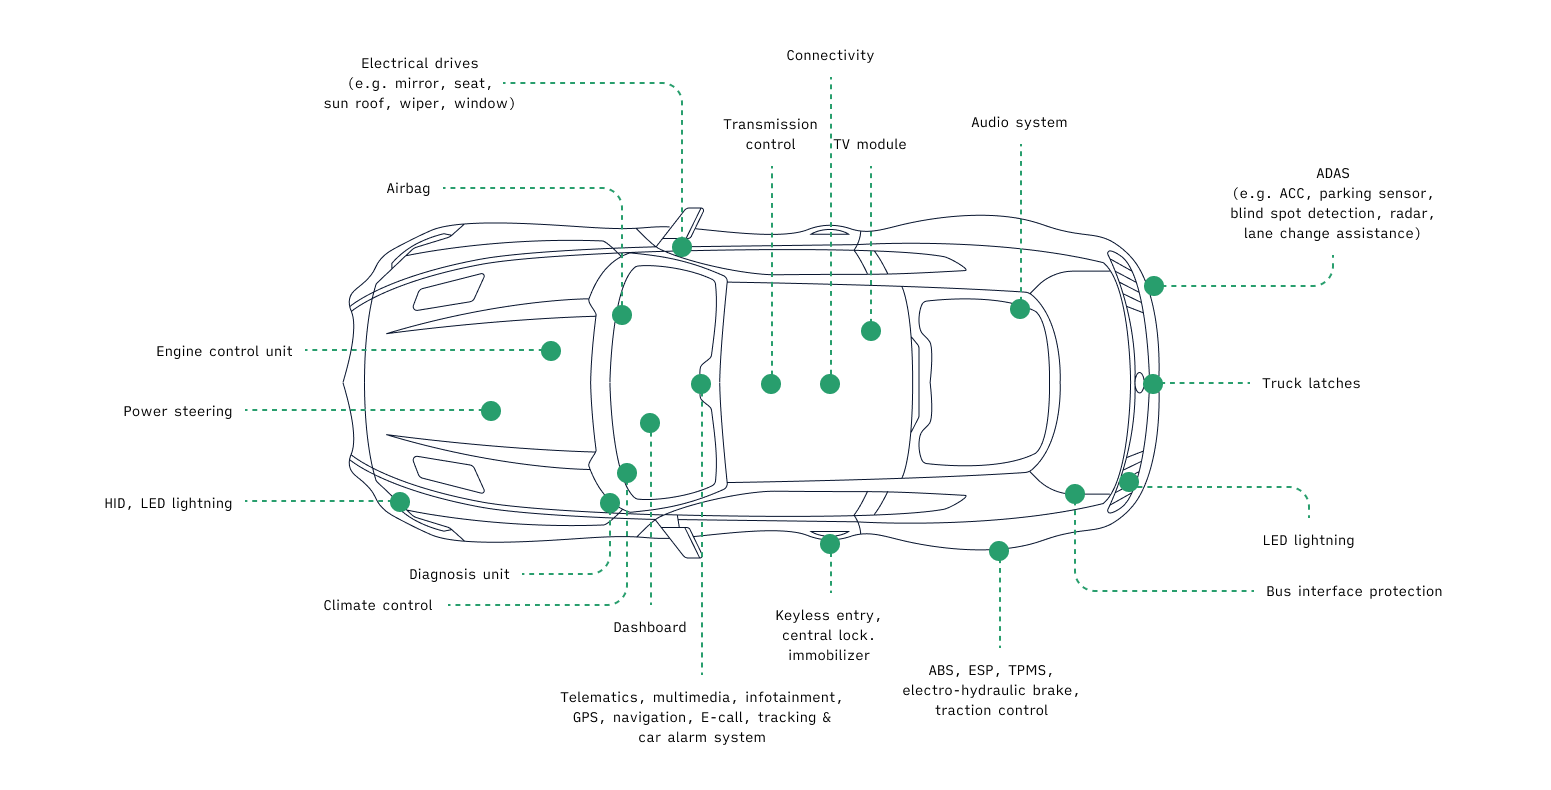 Software and hardware components in vehicles